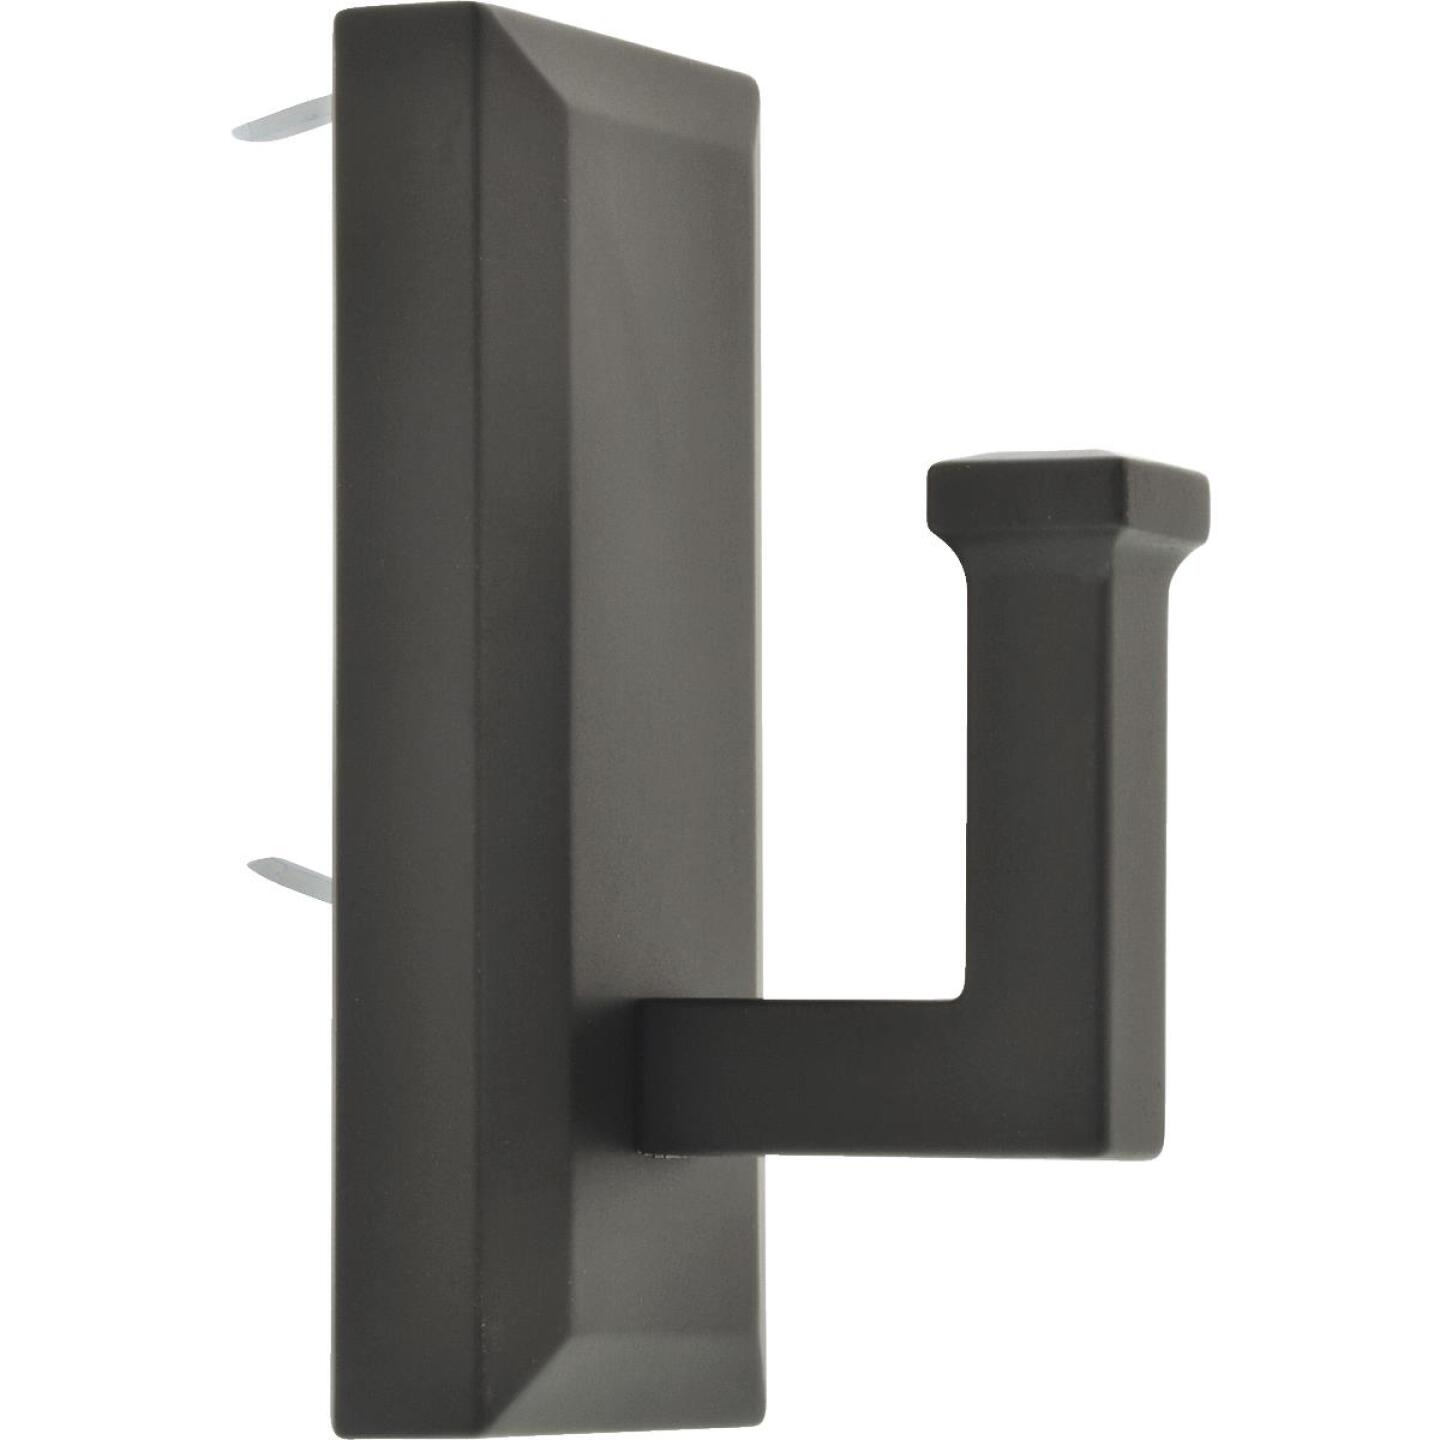 Hillman High and Mighty 15 Lb. Capacity Oil Rubbed Bronze Rectangular Decorative Hook Image 1